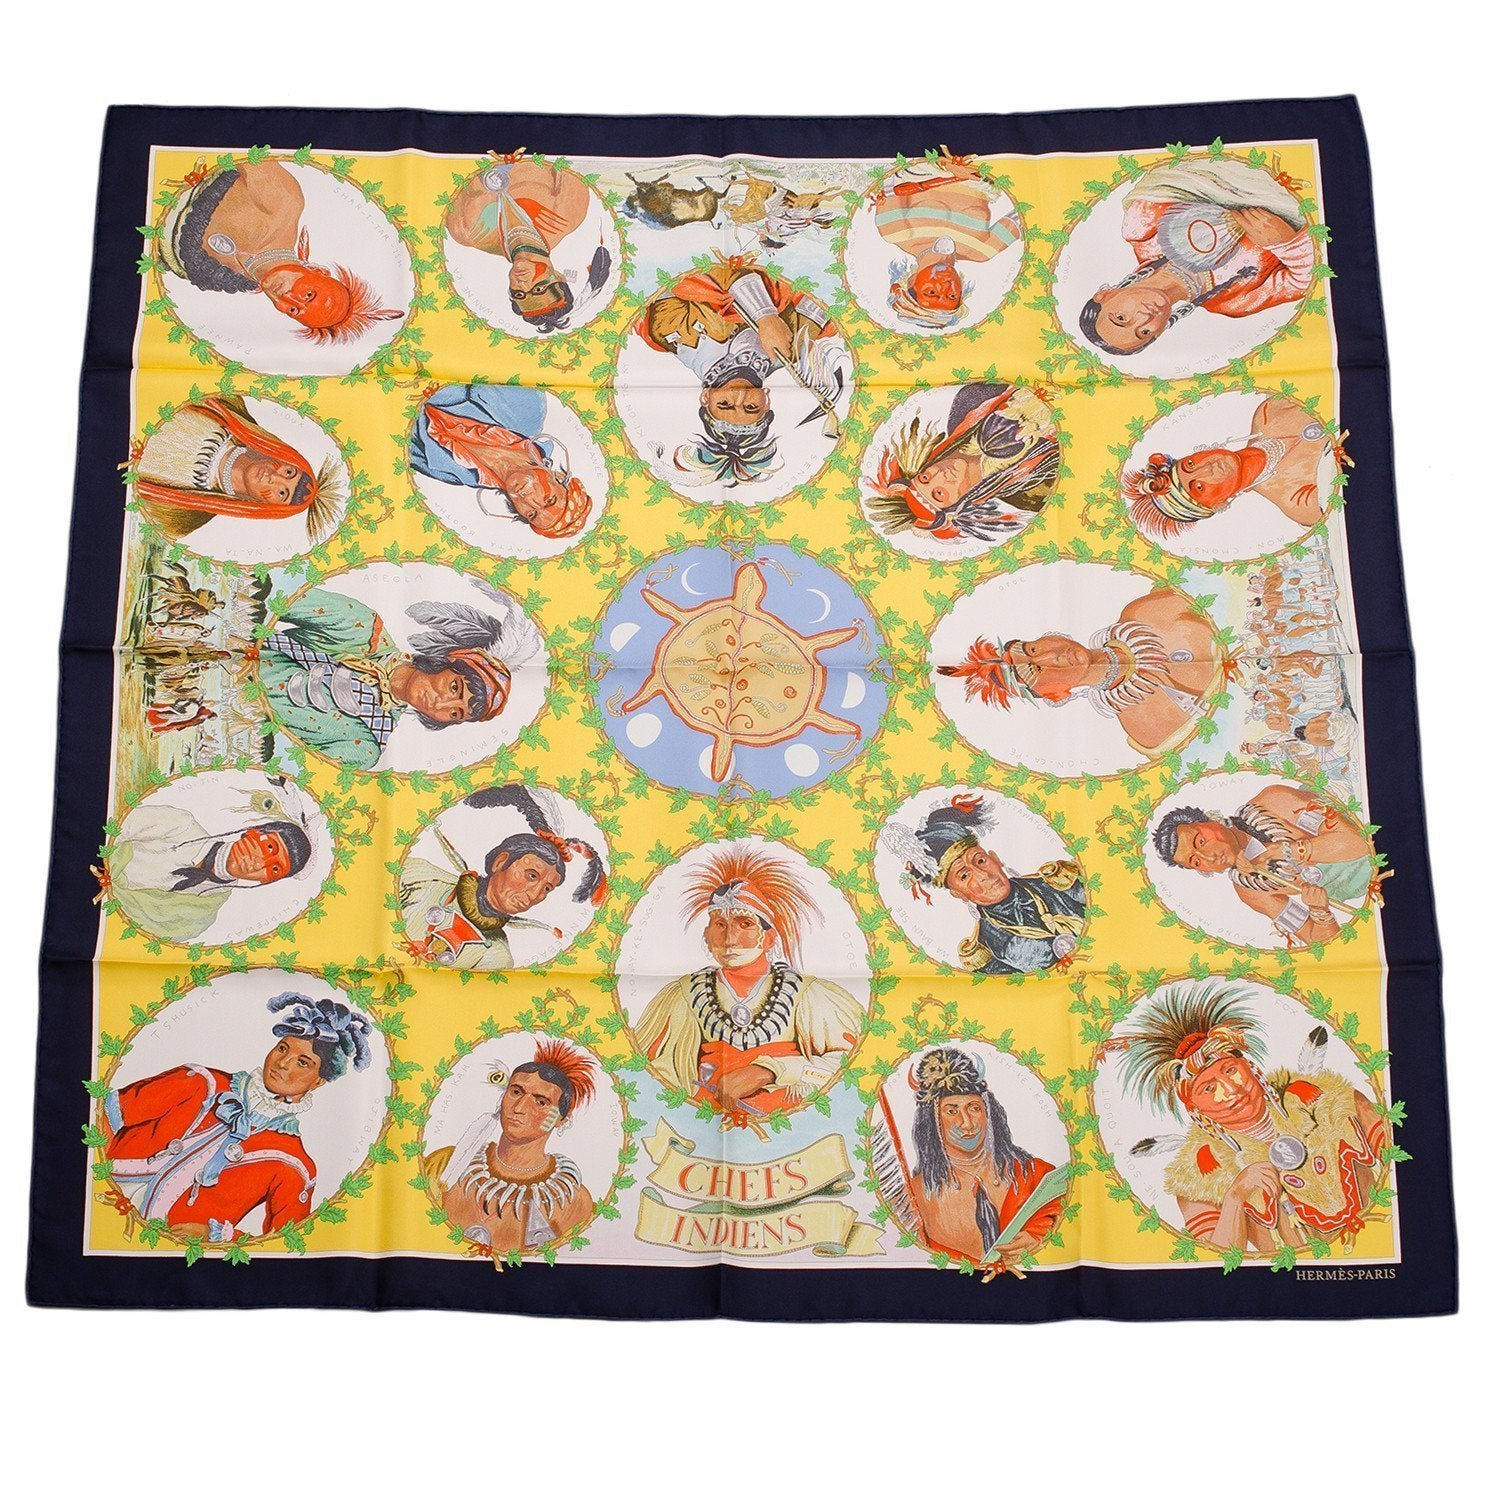 Hermes Chefs Indiens Silk Twill Scarf 90Cm Scarves